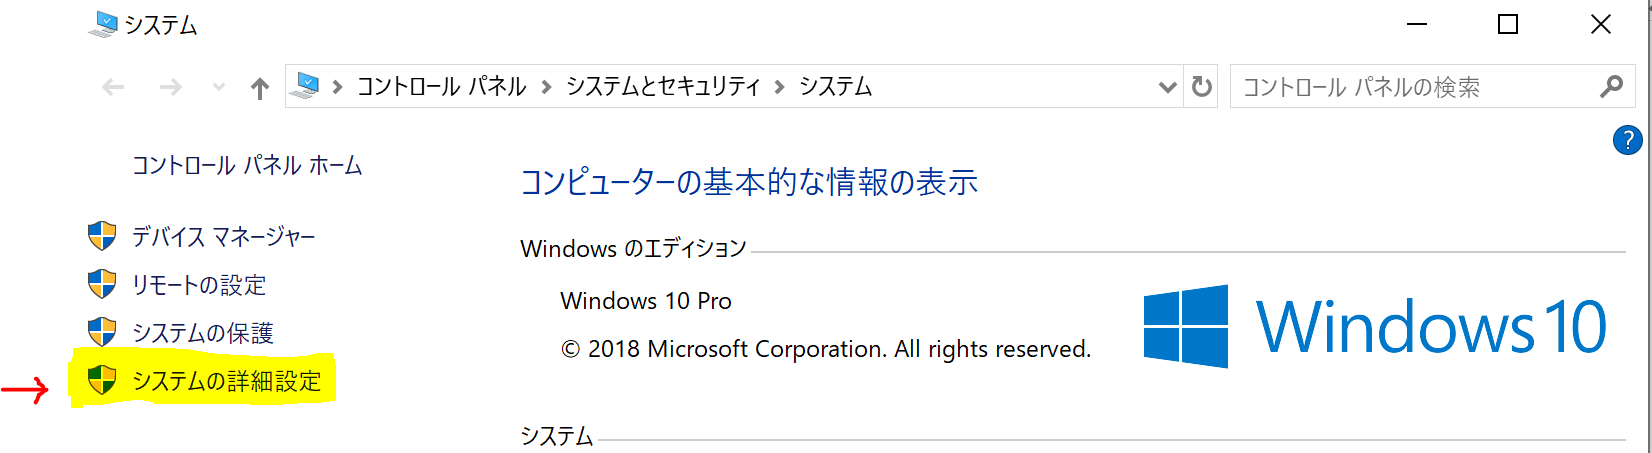 Windows10情報